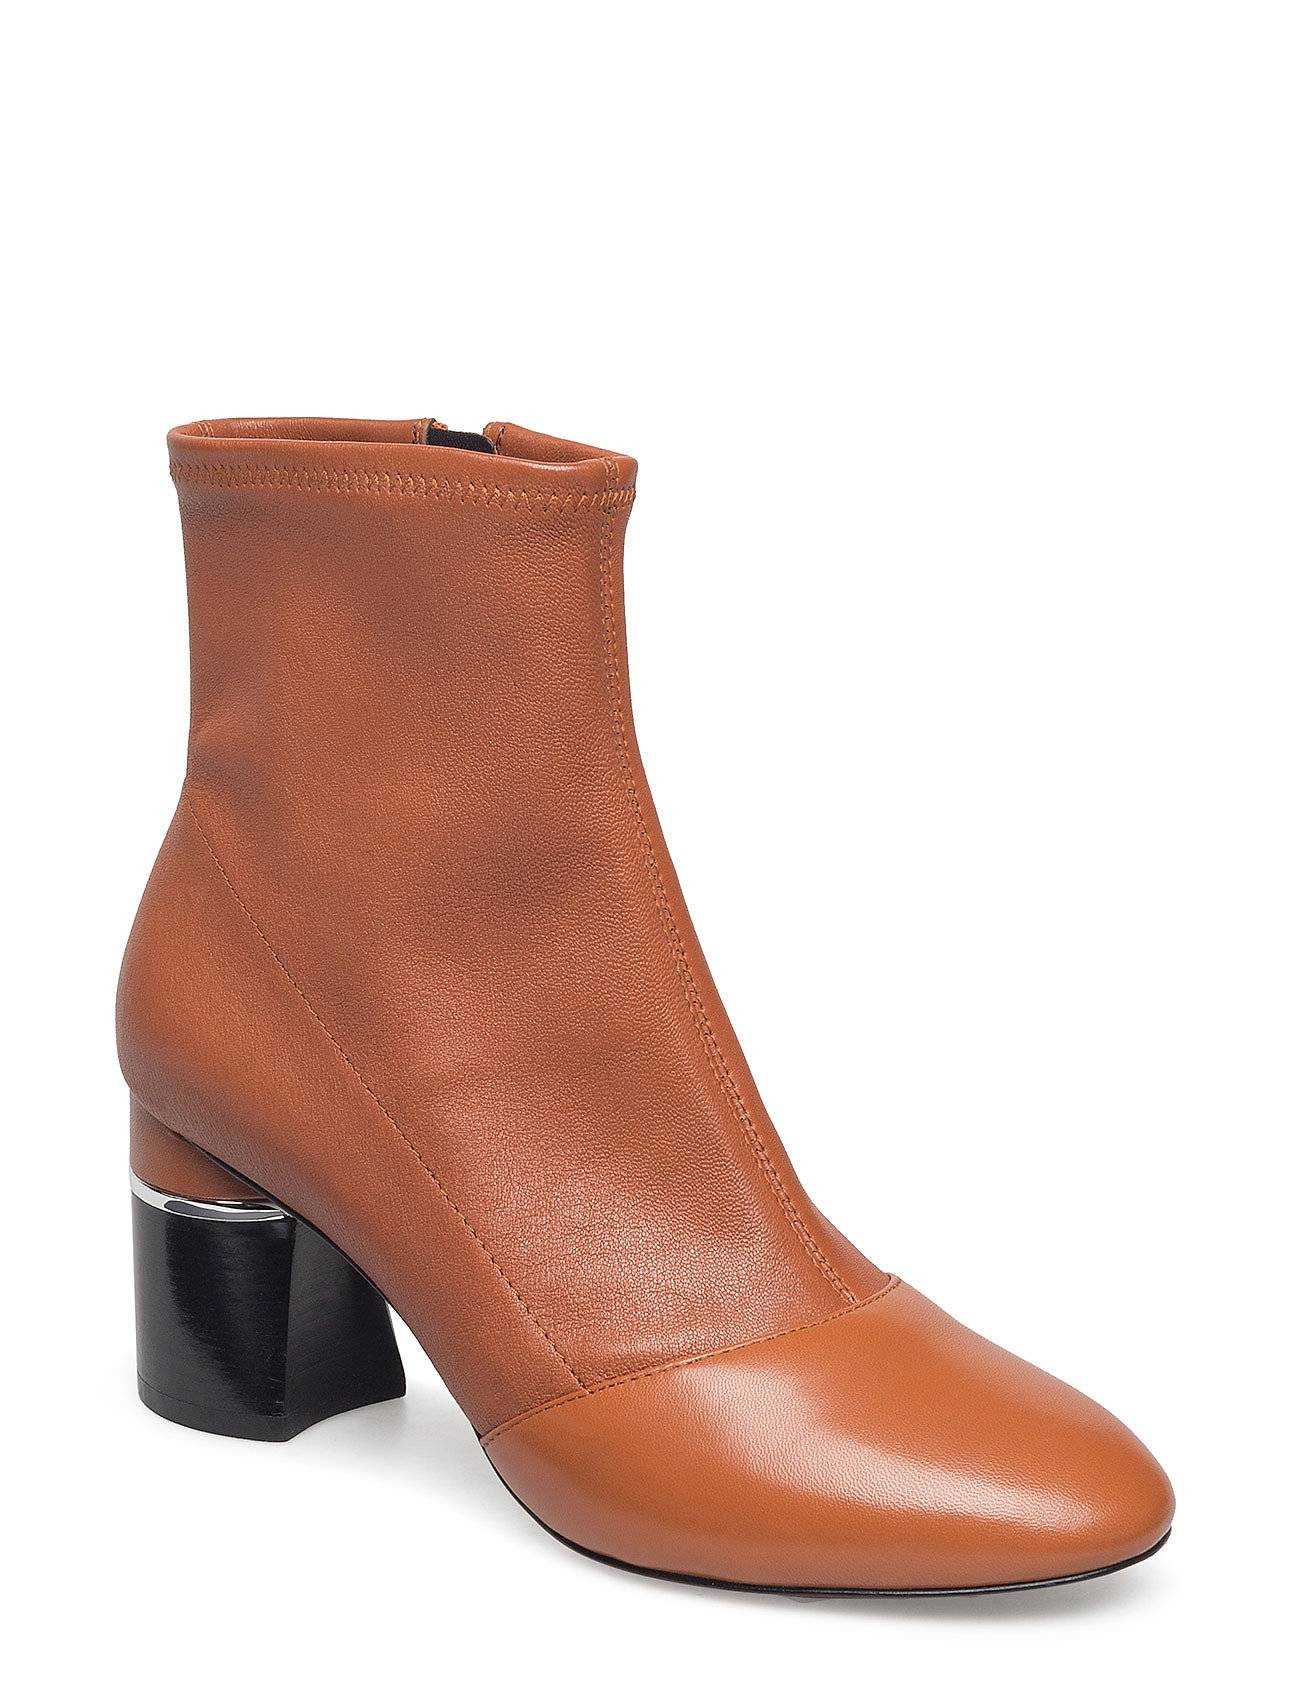 3.1 Phillip Lim Drum - 70mm Stretch Ankle Boot